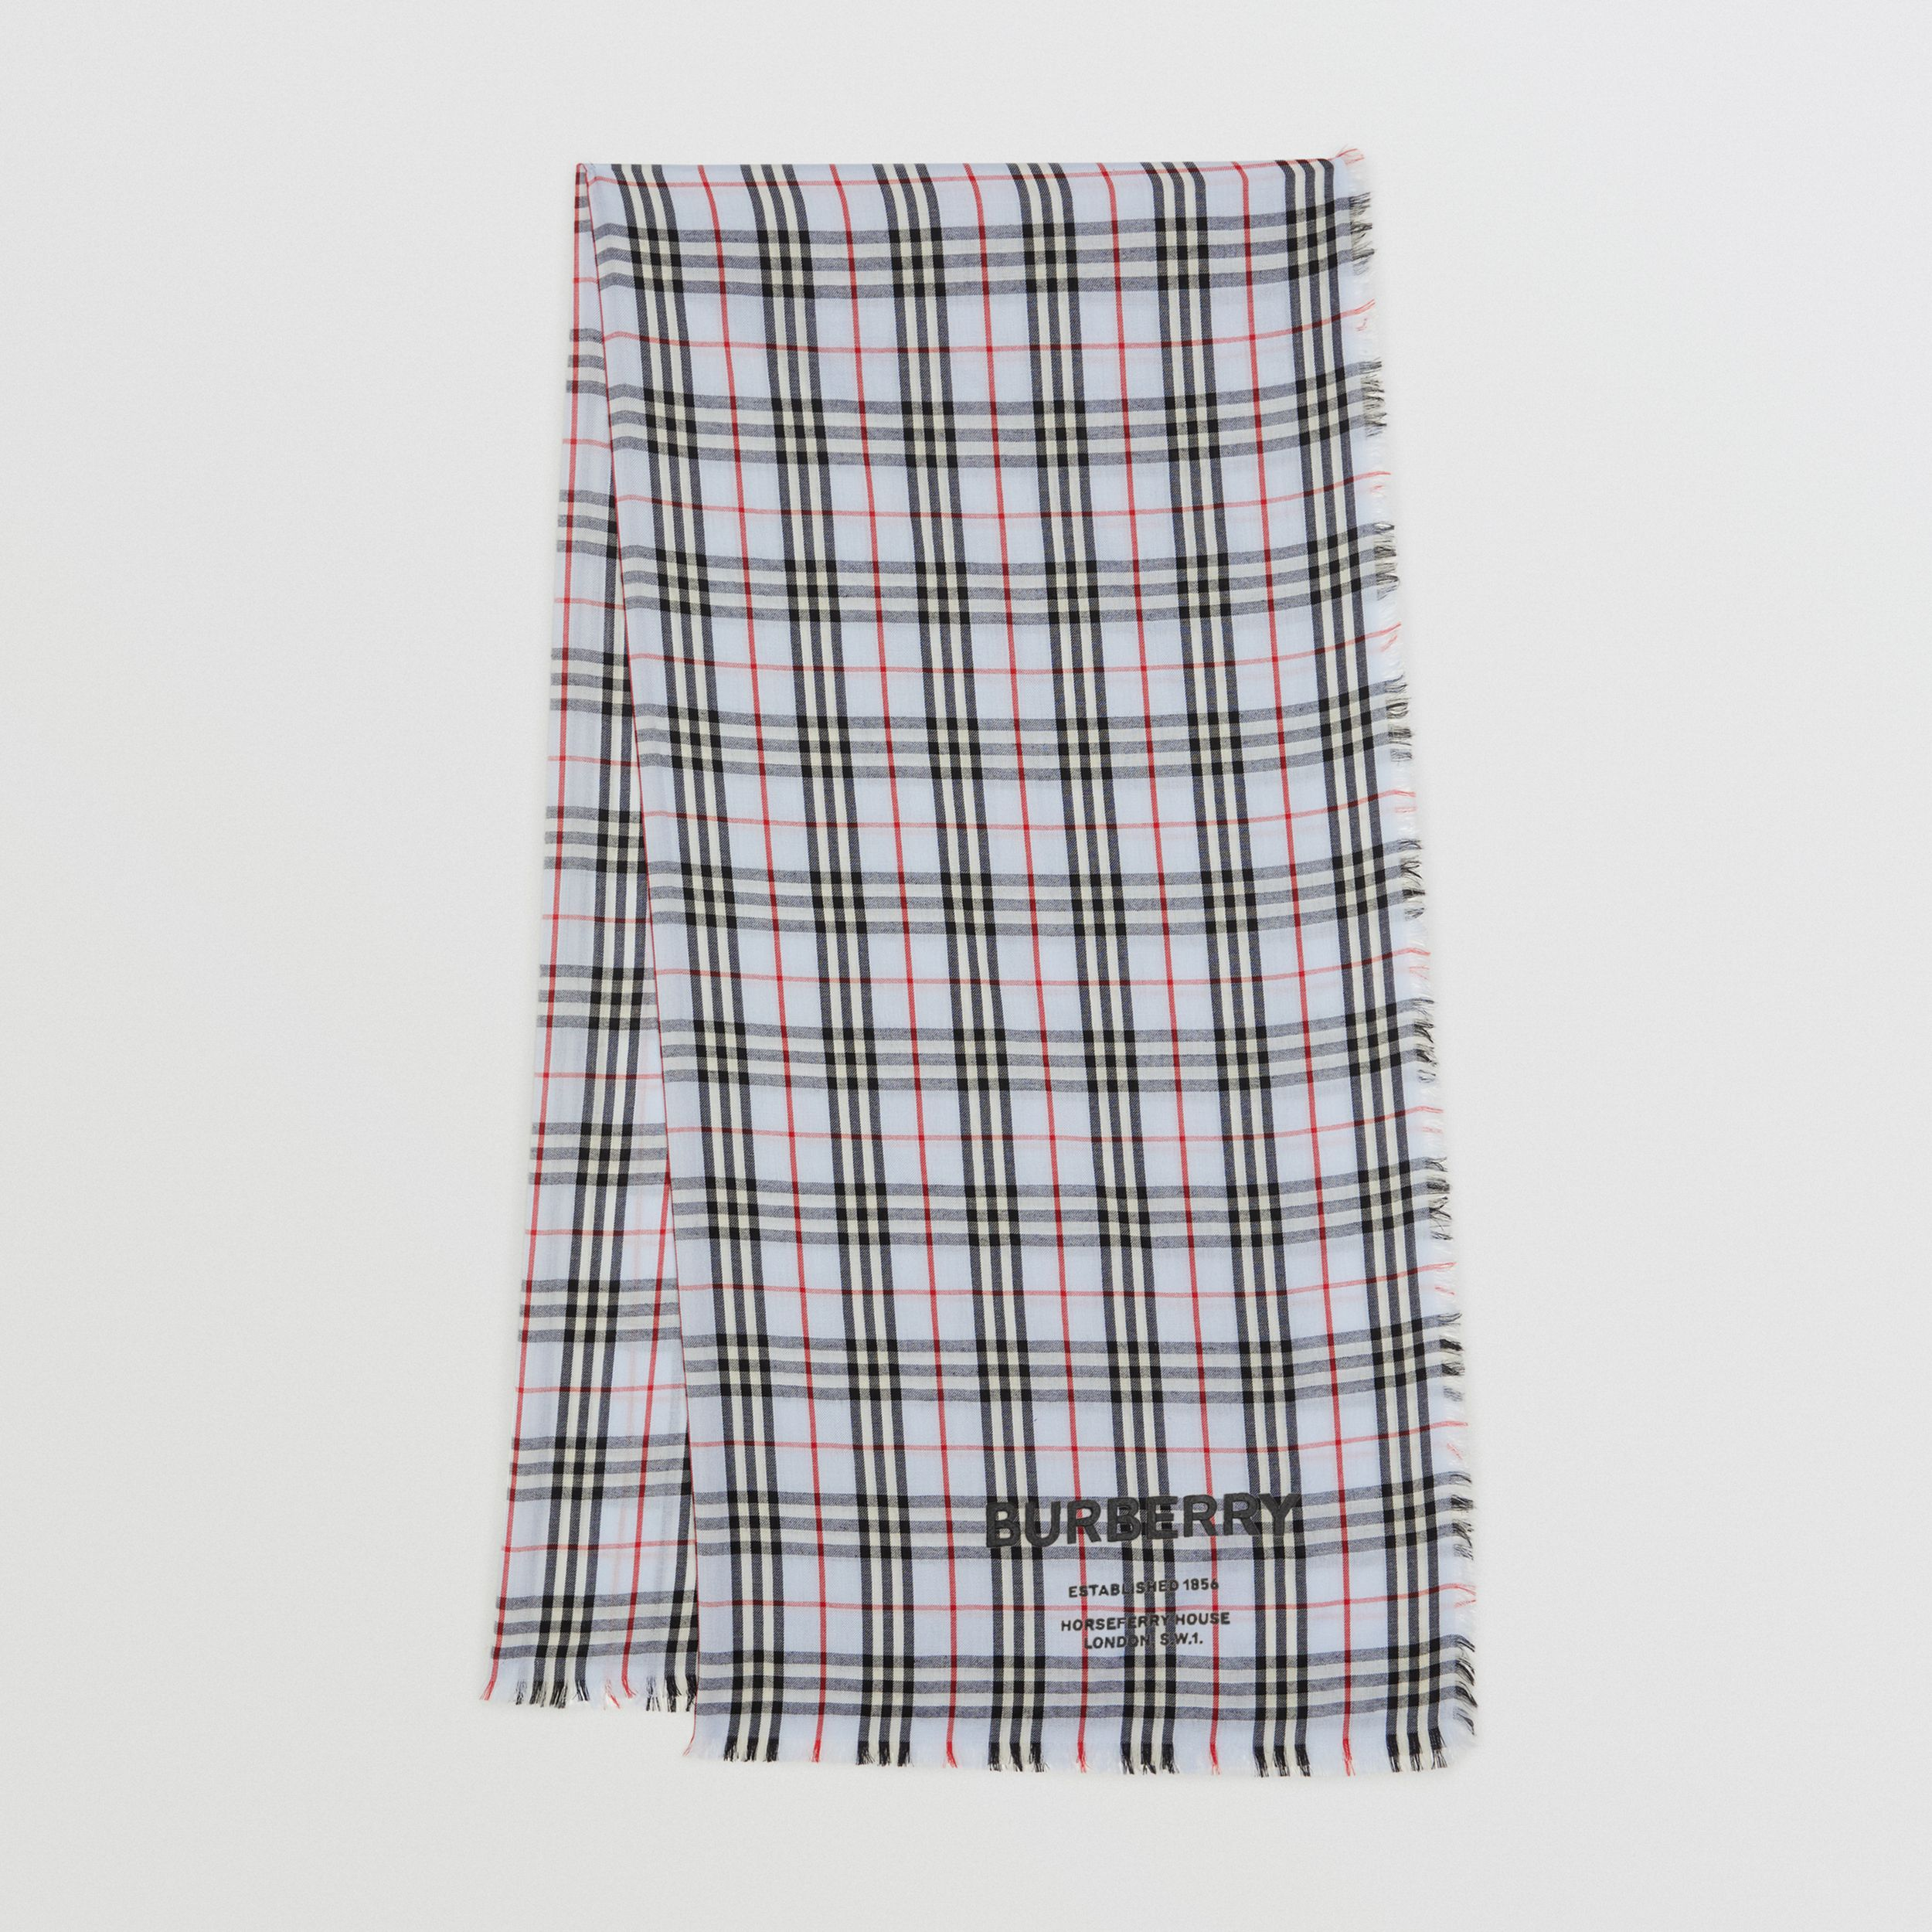 Embroidered Vintage Check Lightweight Cashmere Scarf in Pale Blue | Burberry - 1